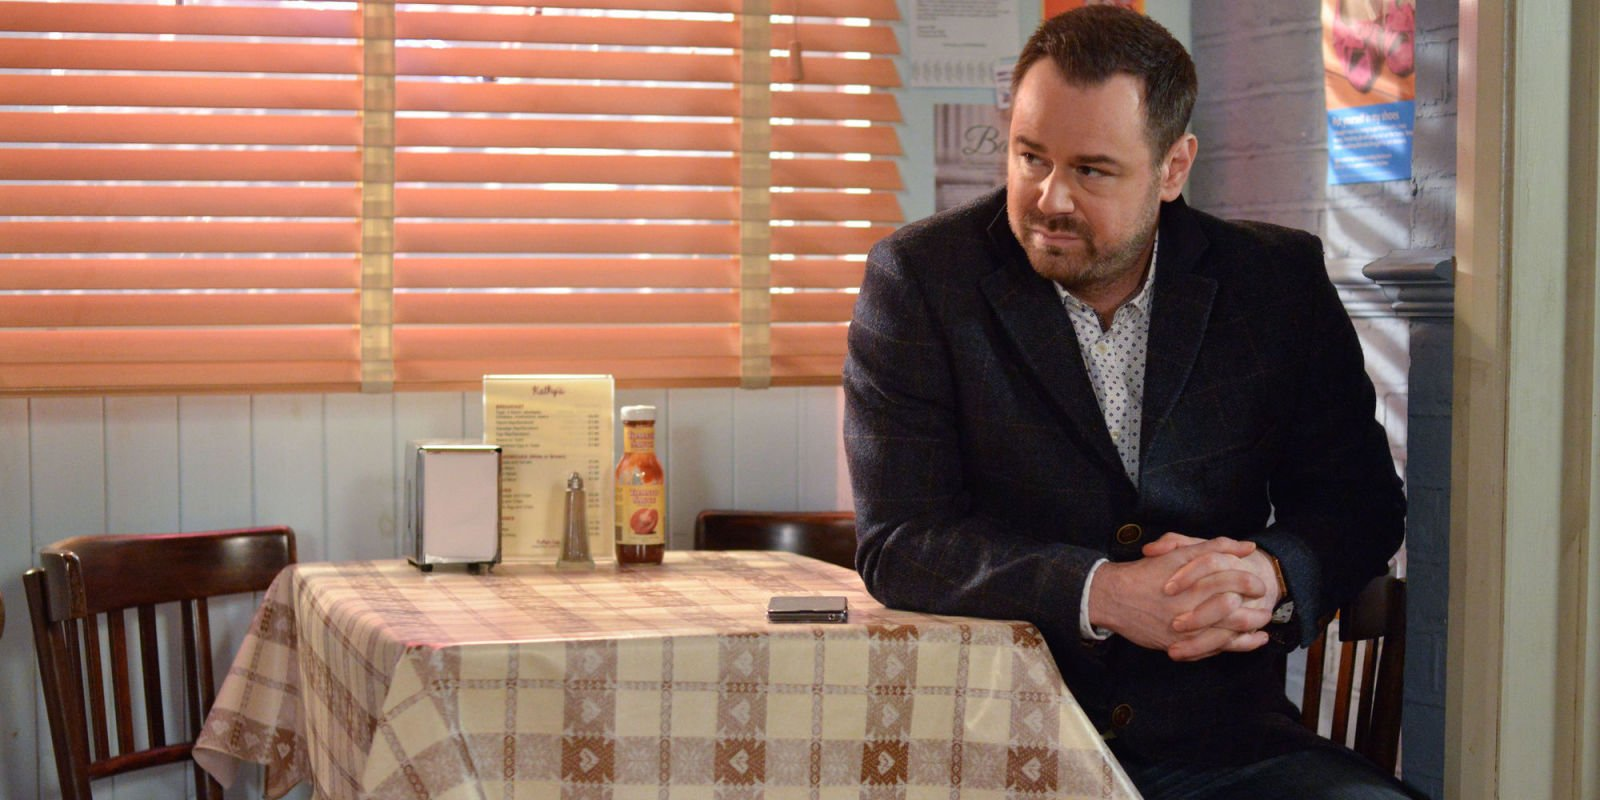 EastEnders will reveal the identity of Mick Carter's mystery attacker tonight